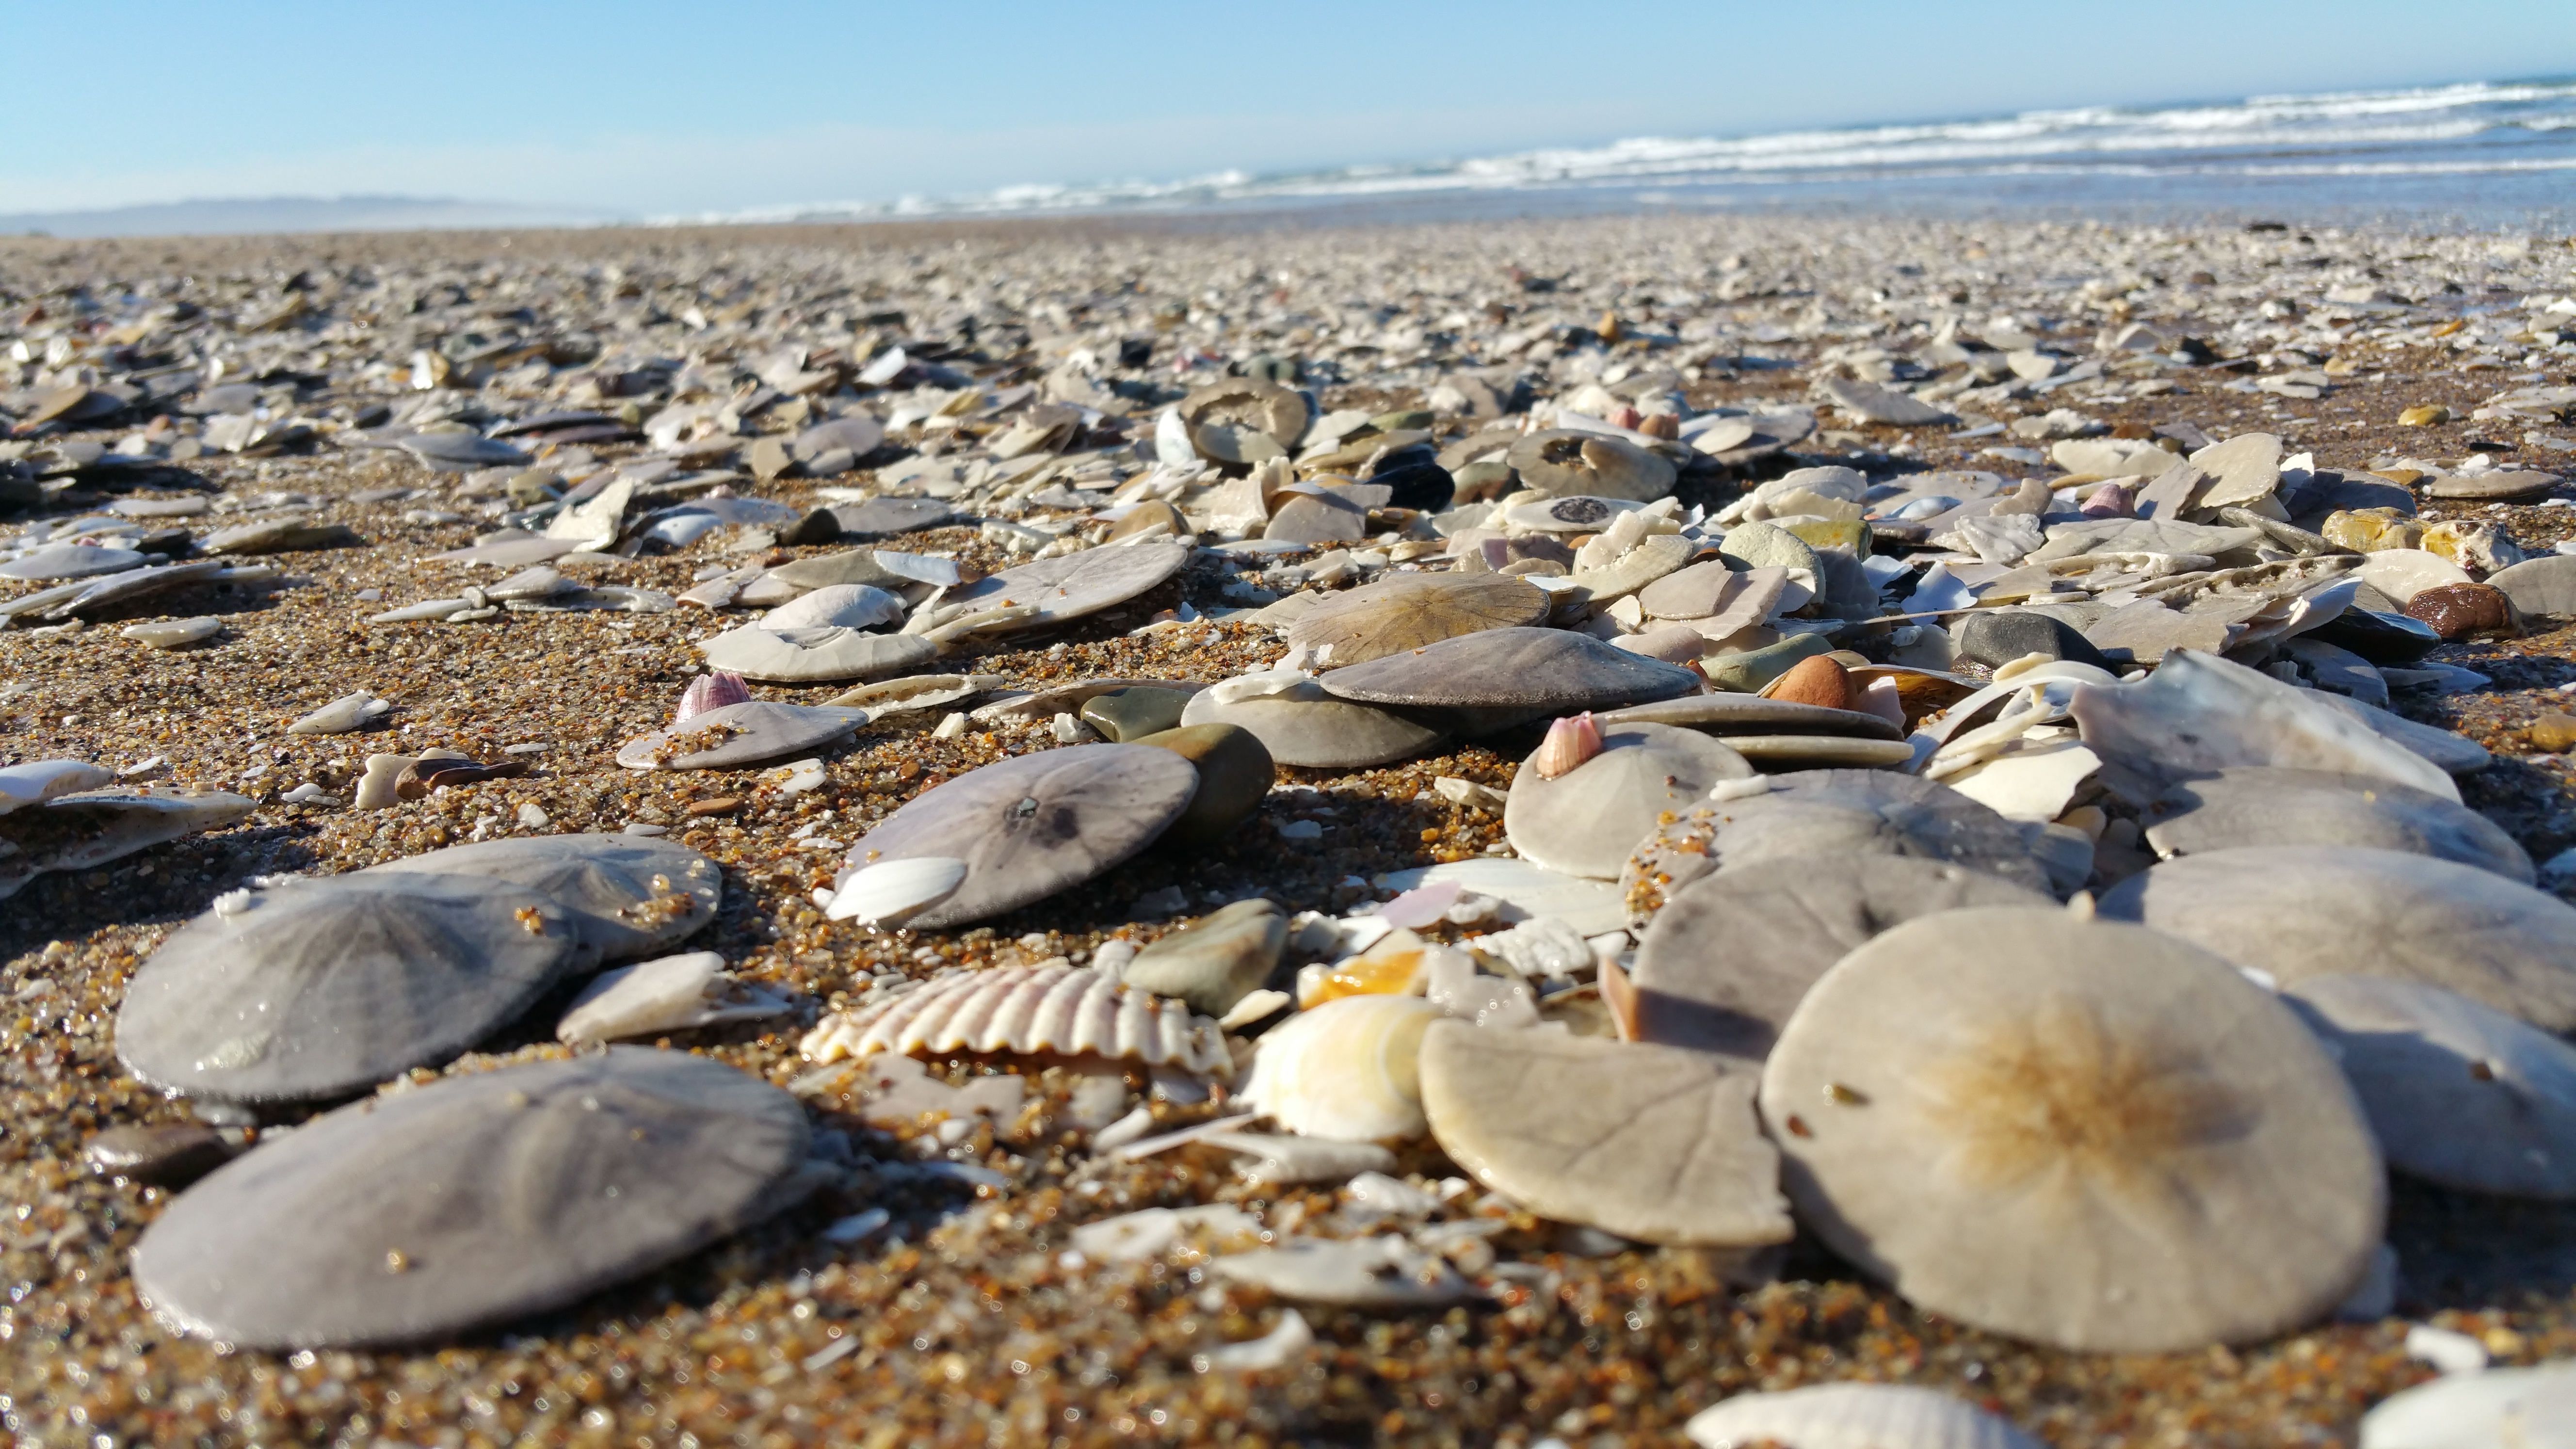 Watch How to Find Sand Dollars video